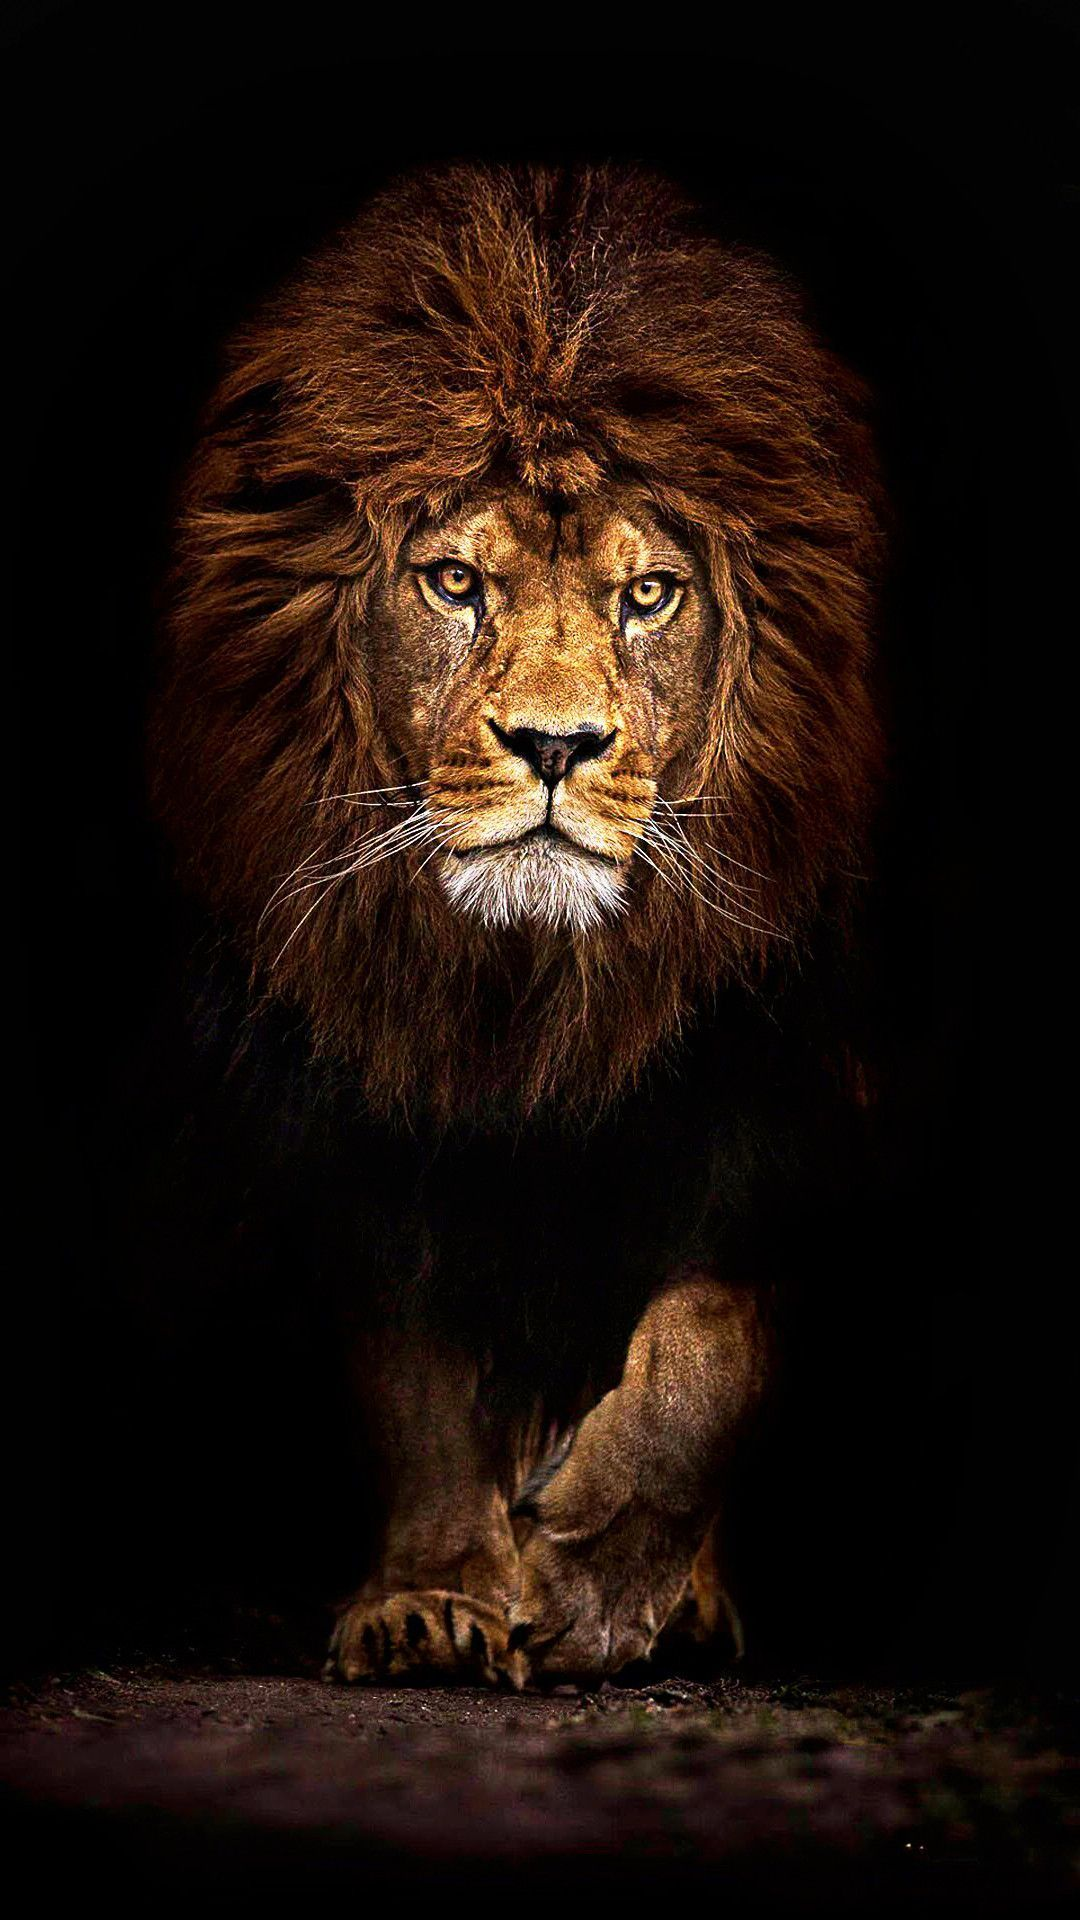 Lion Iphone Android Iphone Desktop Hd Backgrounds Wallpapers 1080p 4k 124816 Hdwallpapers Androidwal Lion Wallpaper Lion Images Lion Hd Wallpaper